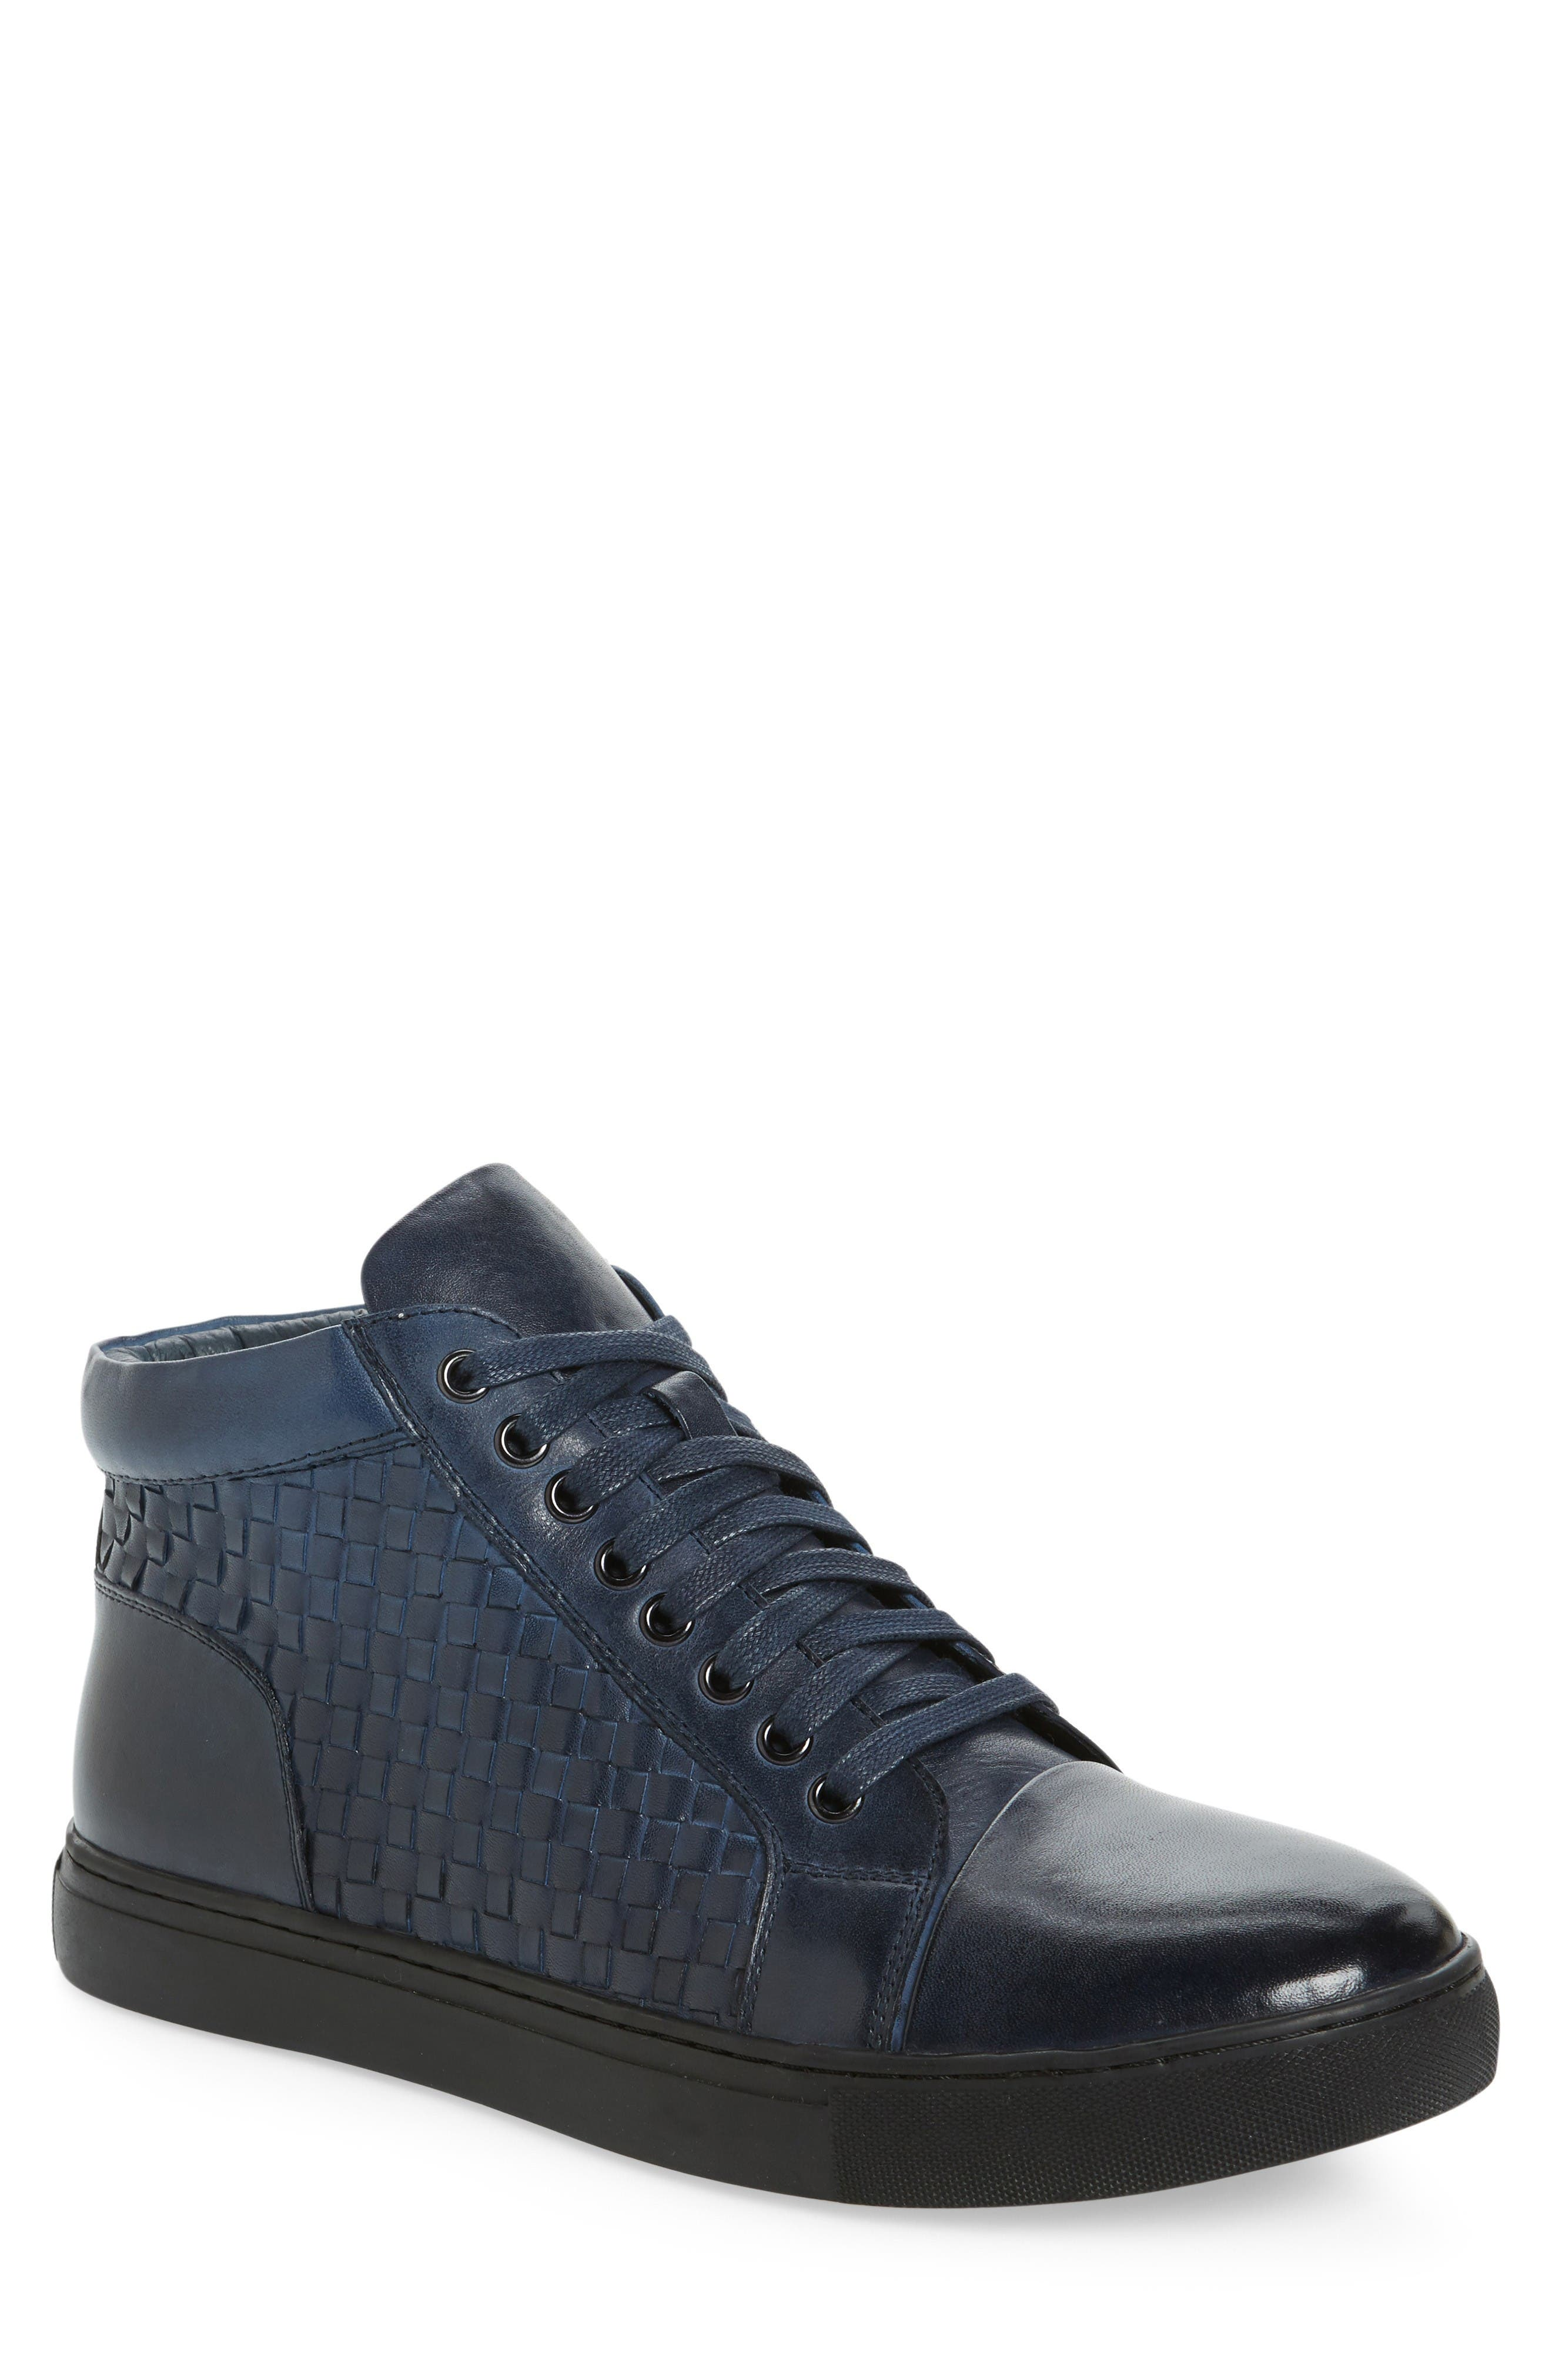 Zanzara Soul High Top Sneaker (Men)